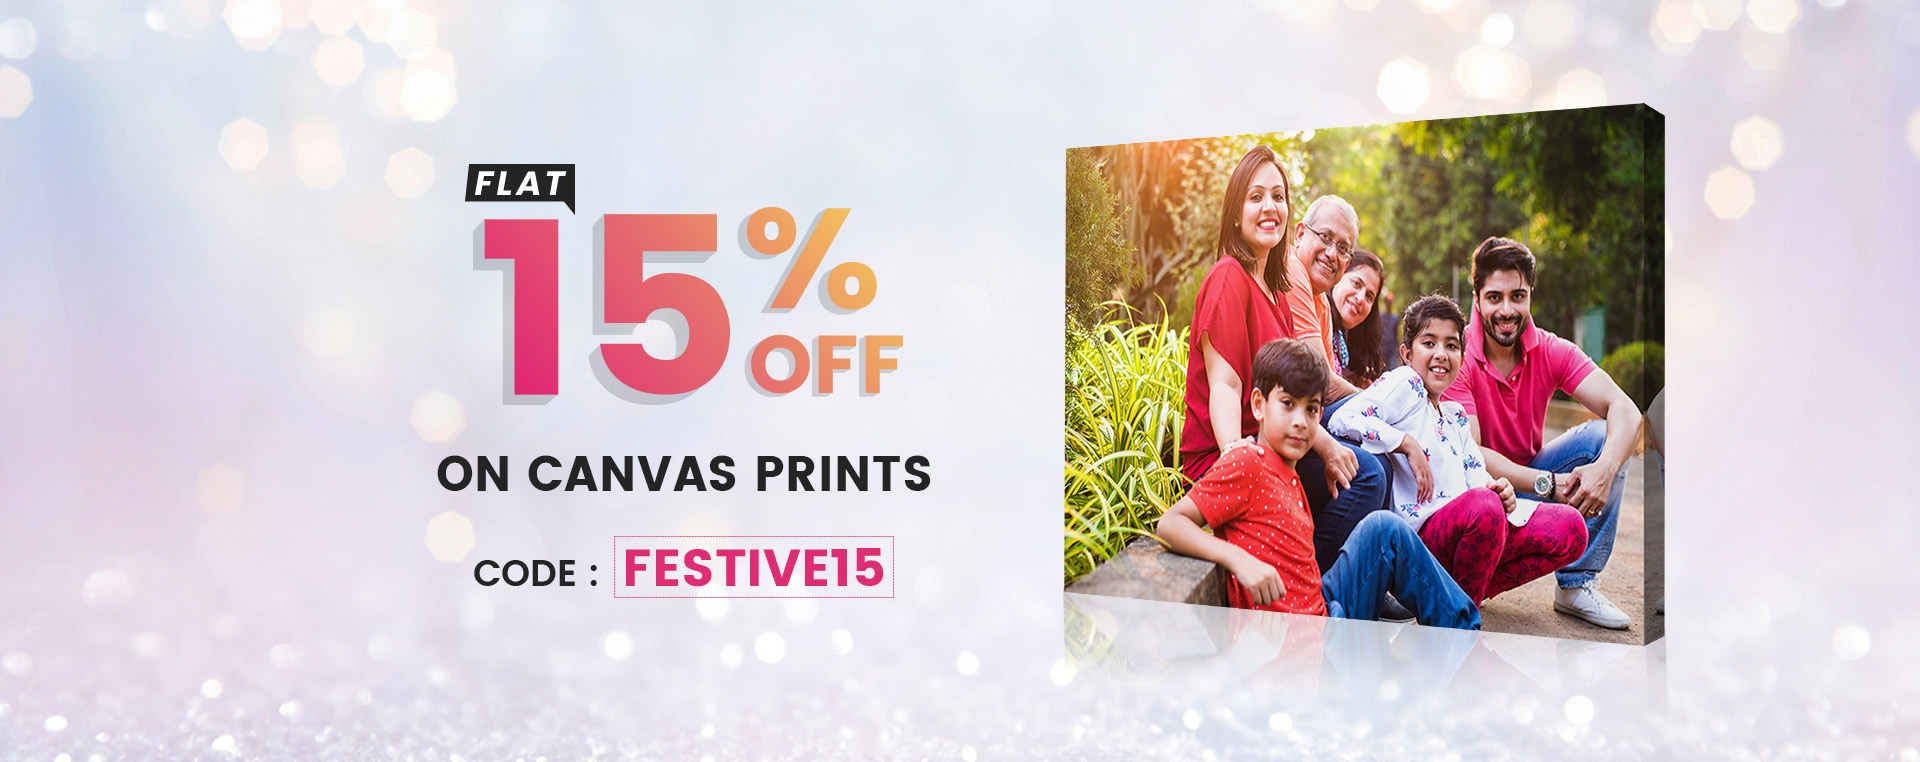 Canvas Prints - Festival Offers